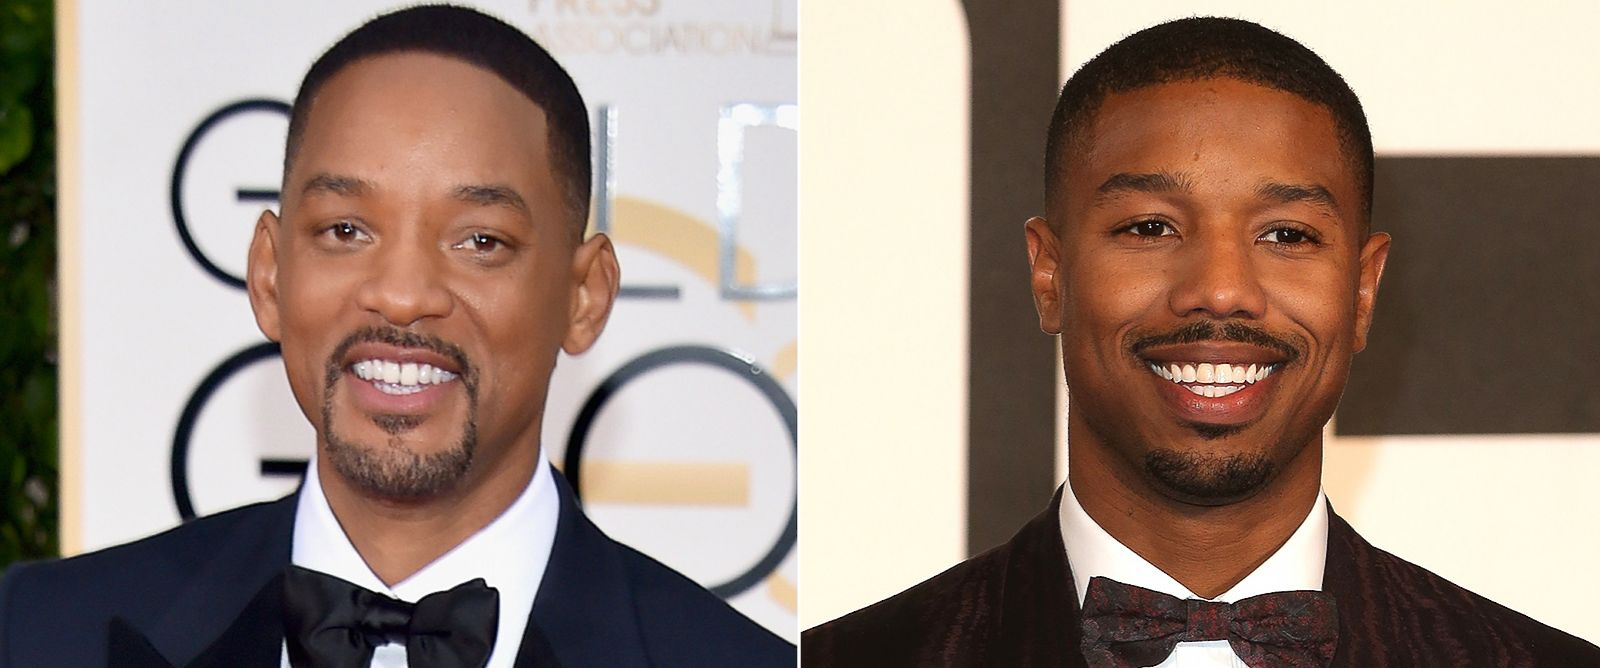 PHOTO: Pictured (L-R) are Will Smith in Beverly Hills, Calif., Jan. 10, 2016 and Michael B. Jordan in London, Jan. 12, 2016.